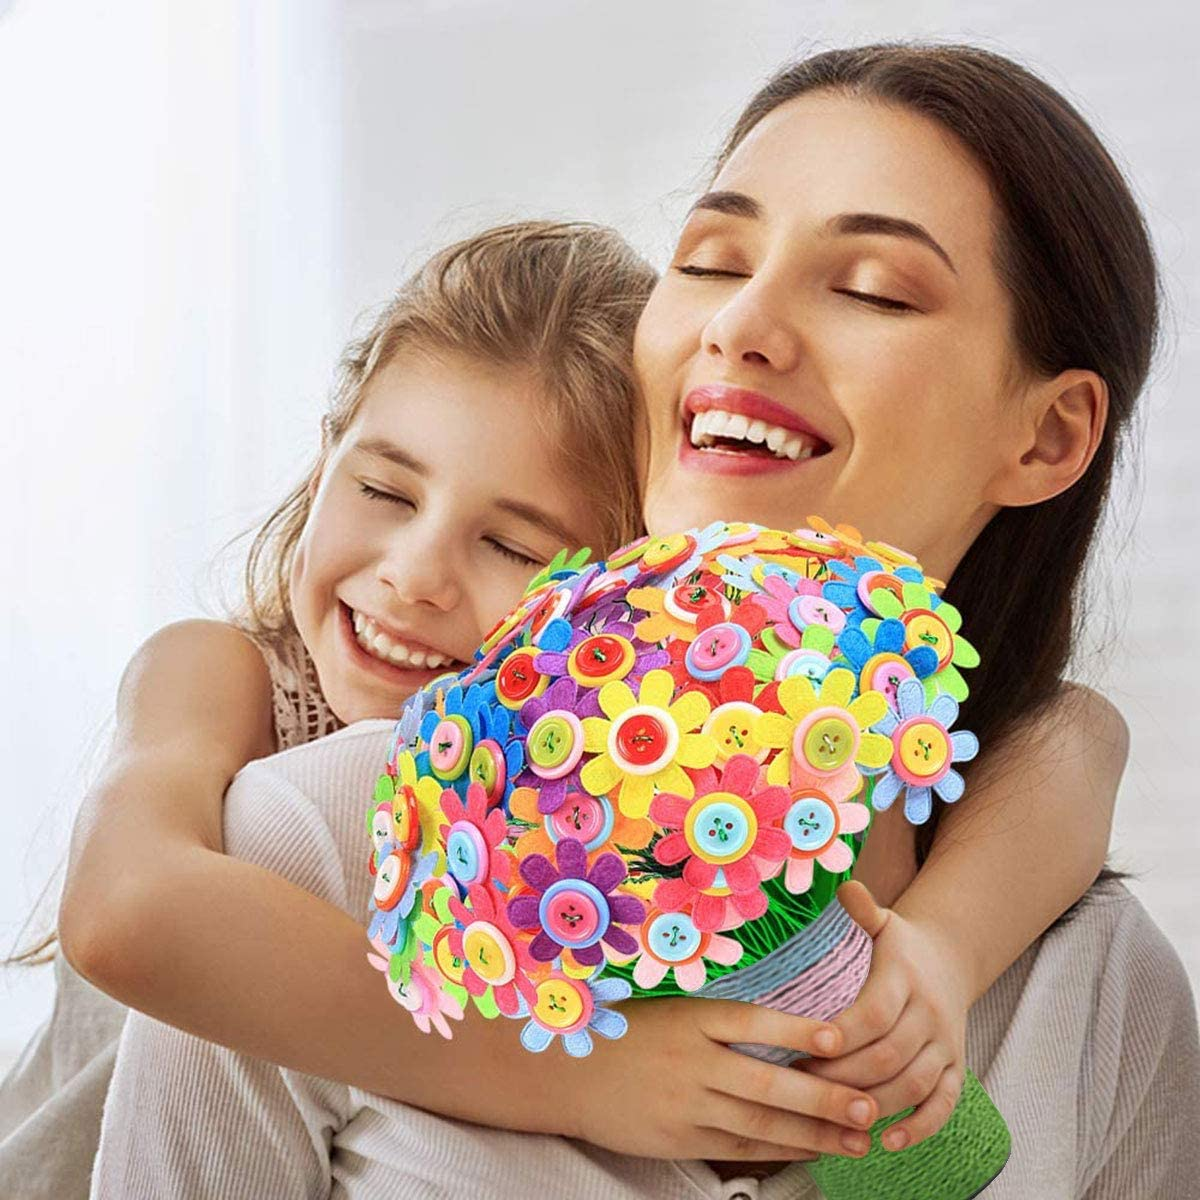 Arts and Crafts Toy for Age 4-12 Years Old Create Your Own Vase and Flowers Flower Crafts for Kids Fun DIY Craft Kit for Boys Girls